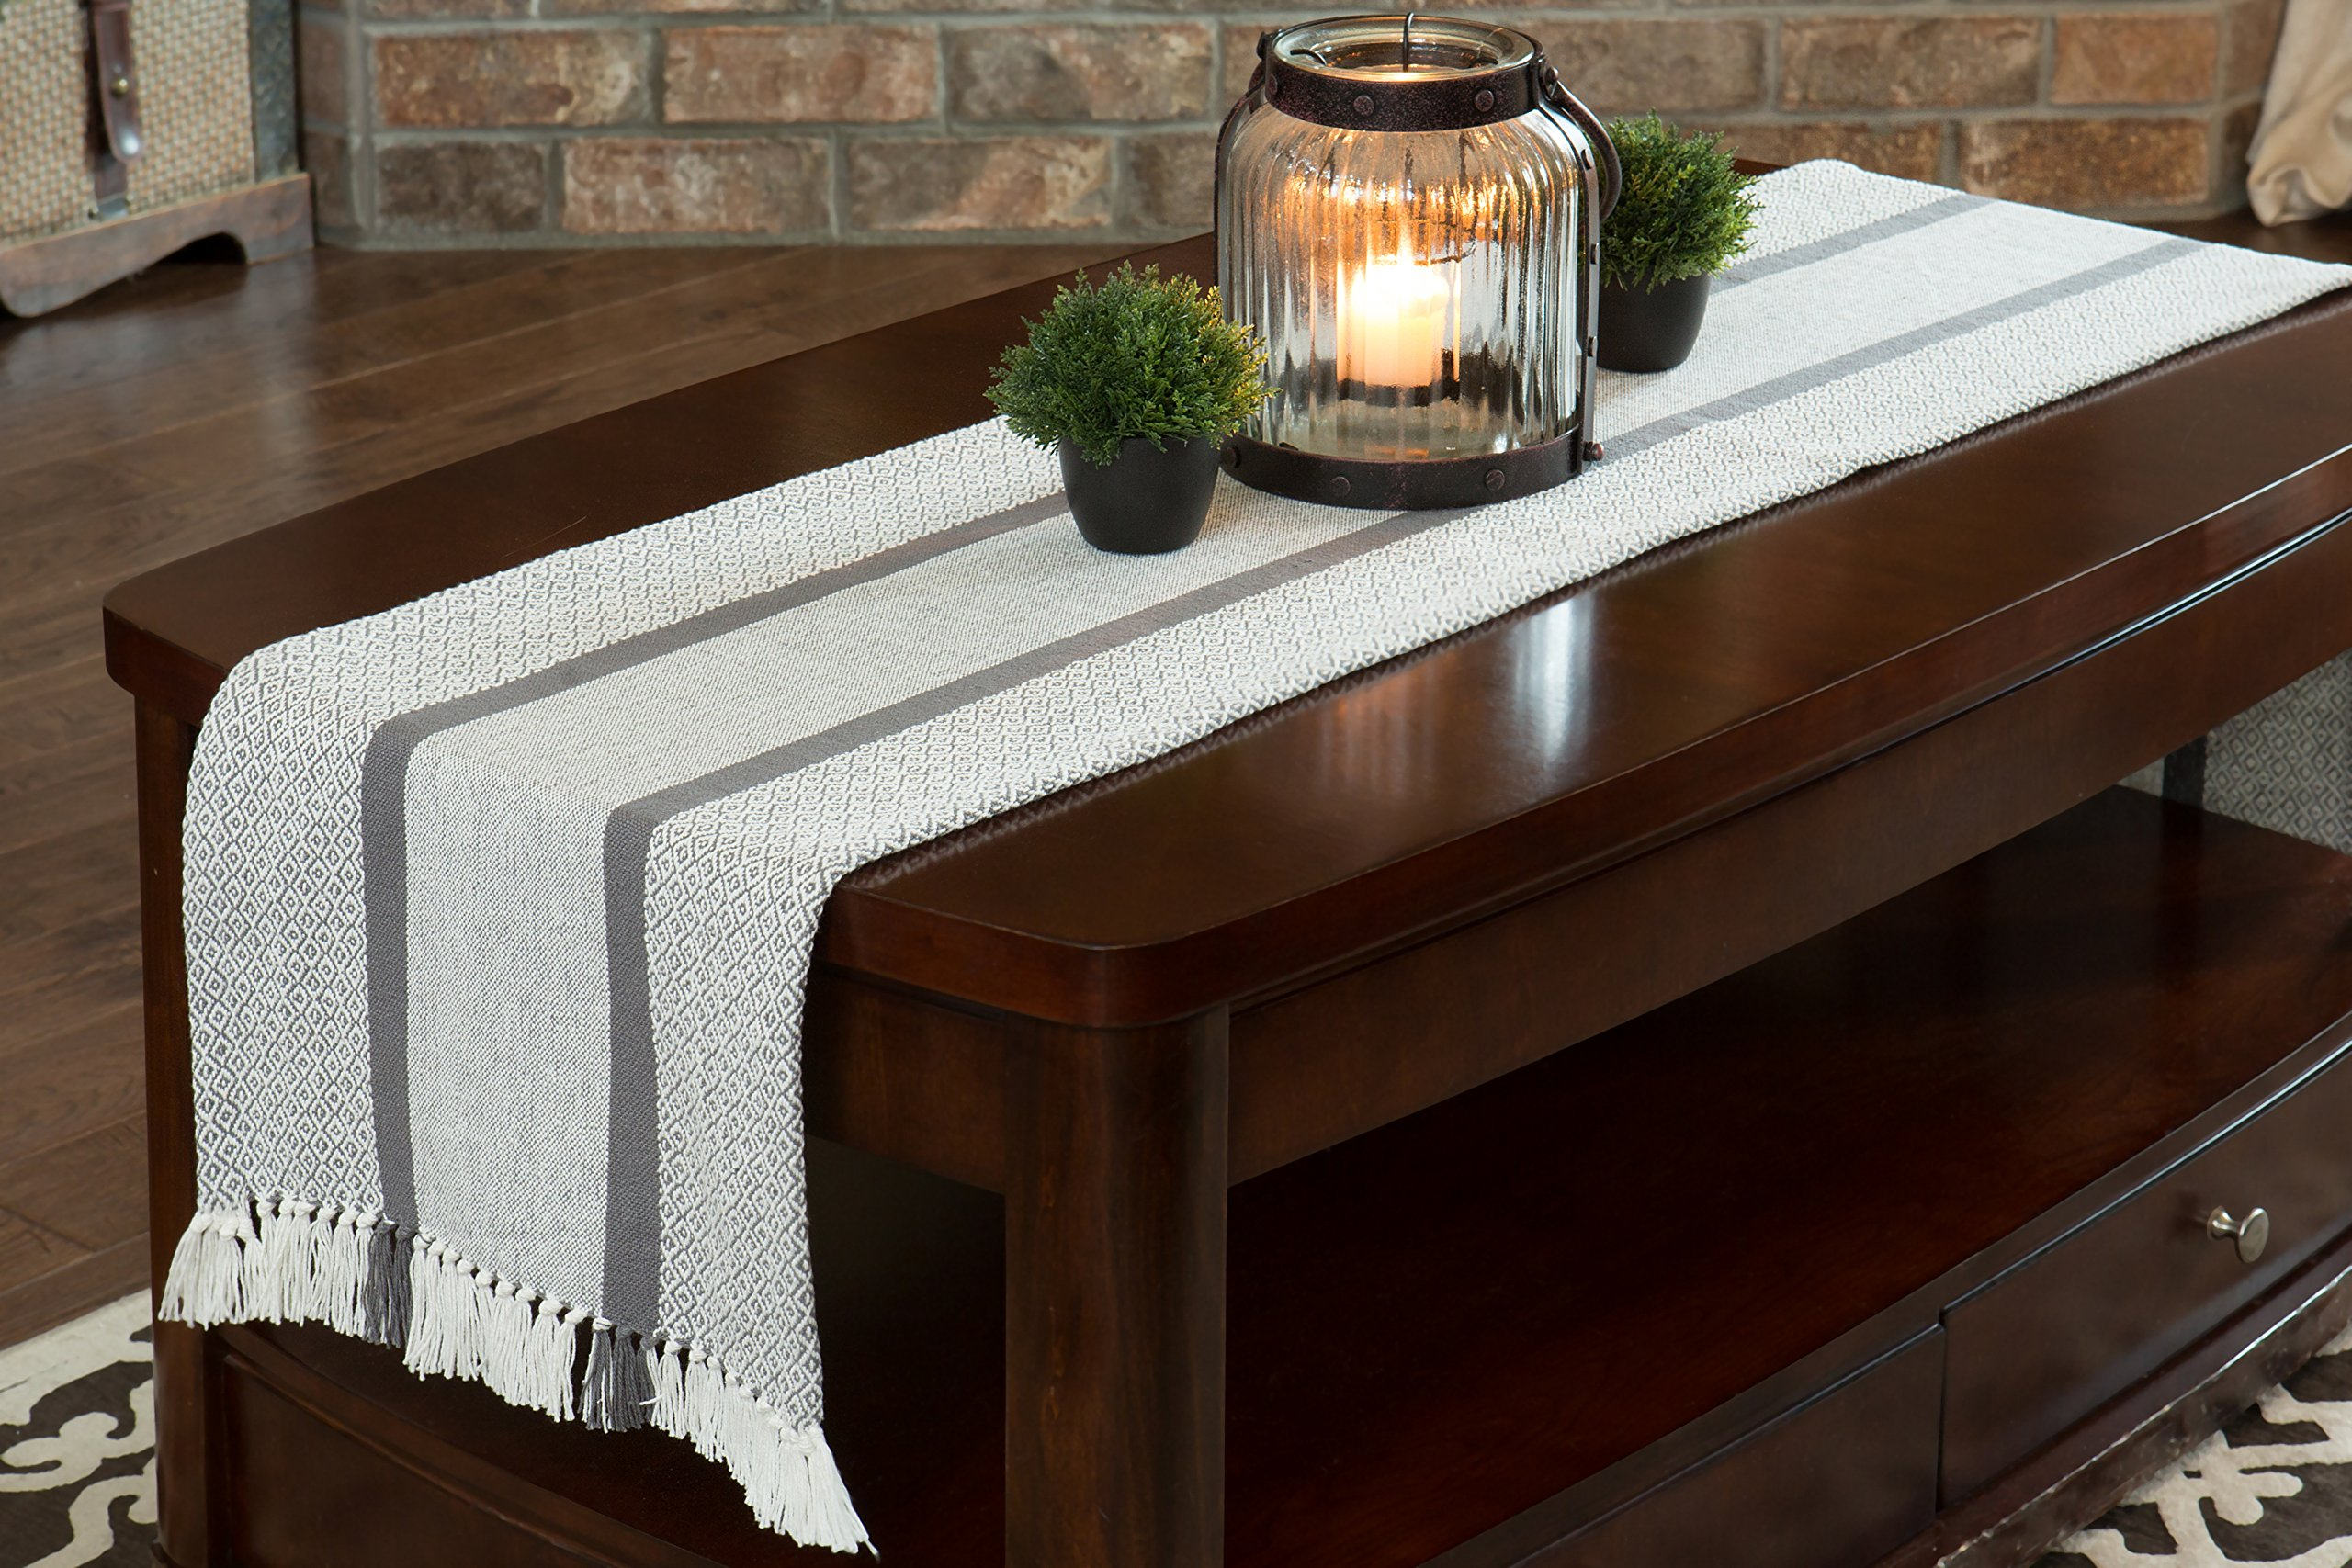 Sticky Toffee Cotton Woven Table Runner with Fringe, Traditional Diamond, Gray, 14 in x 72 in by Sticky Toffee (Image #4)